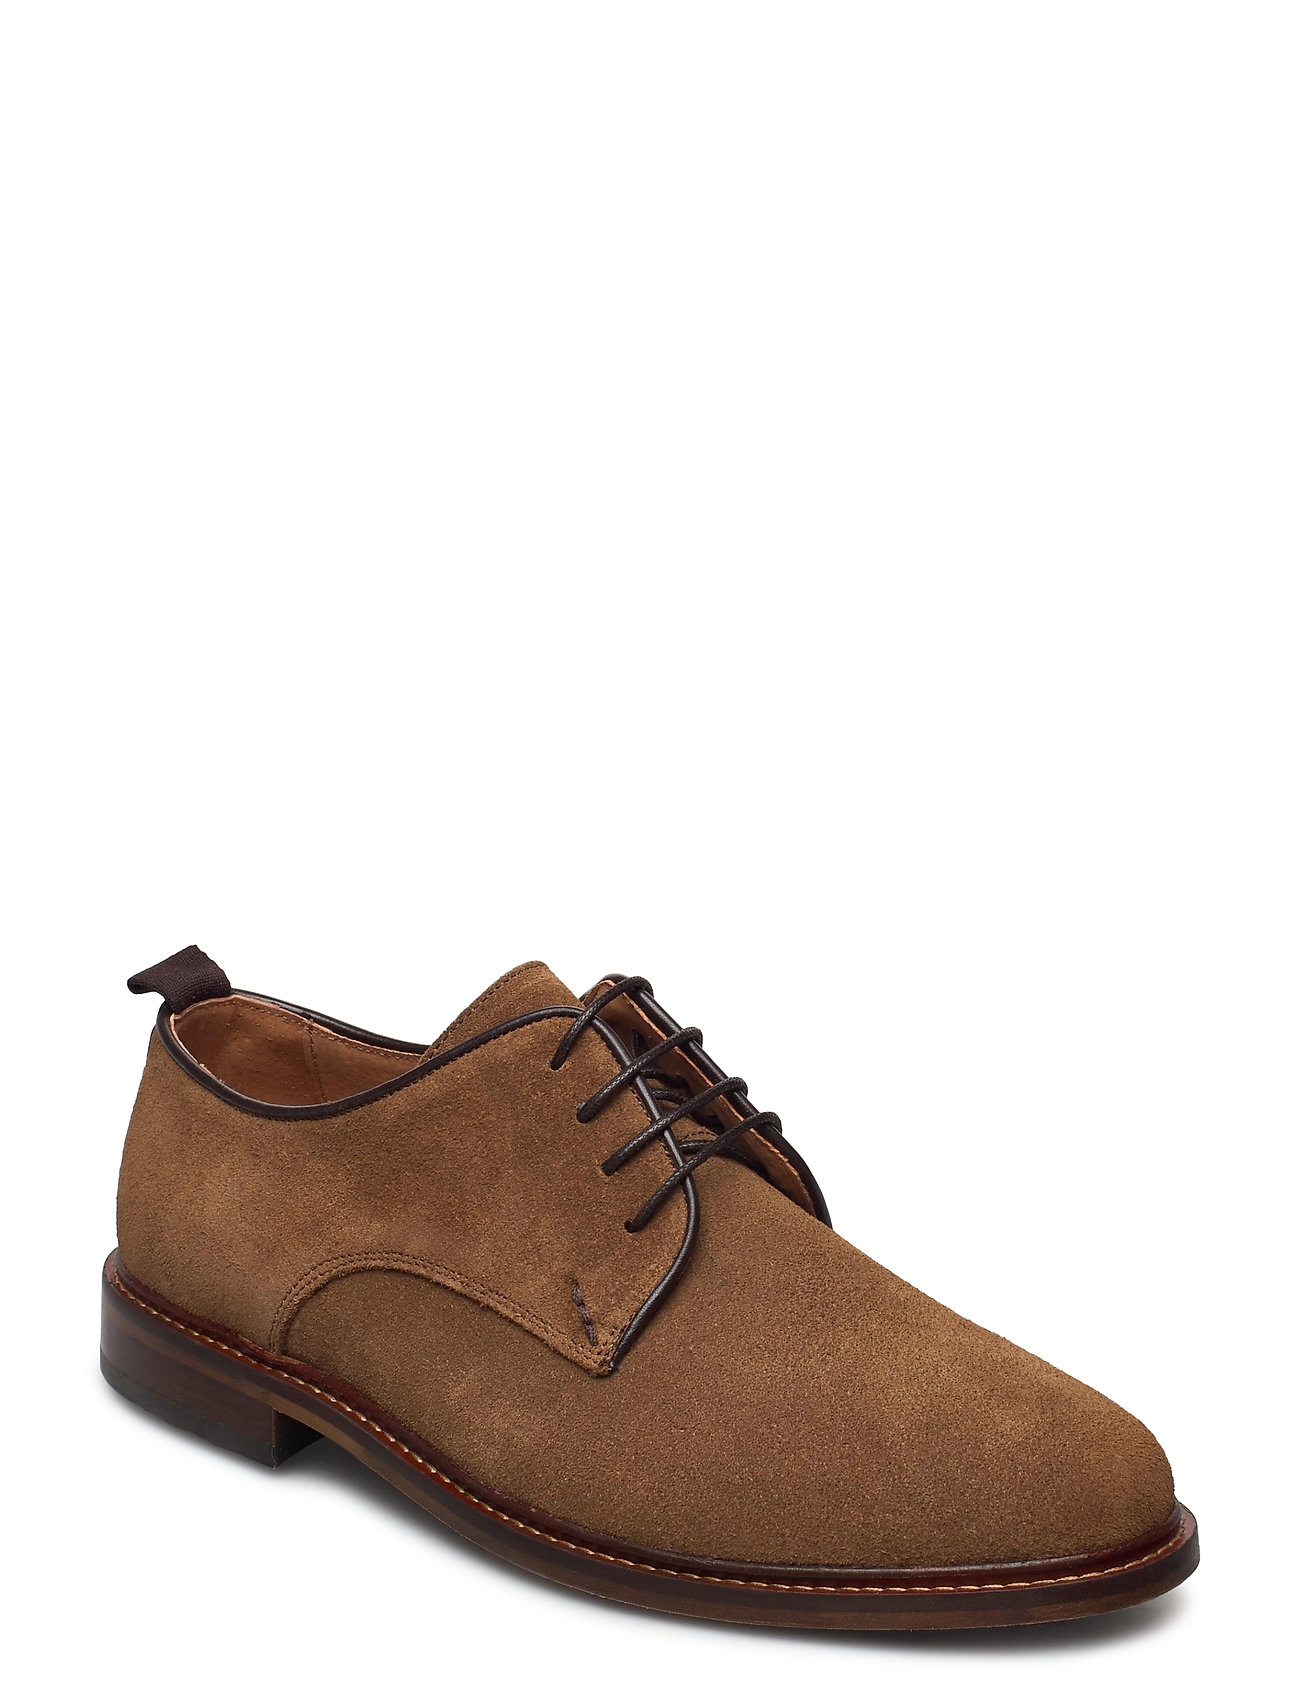 Image of Nate S Shoes Business Laced Shoes Brun Shoe The Bear (3454940343)